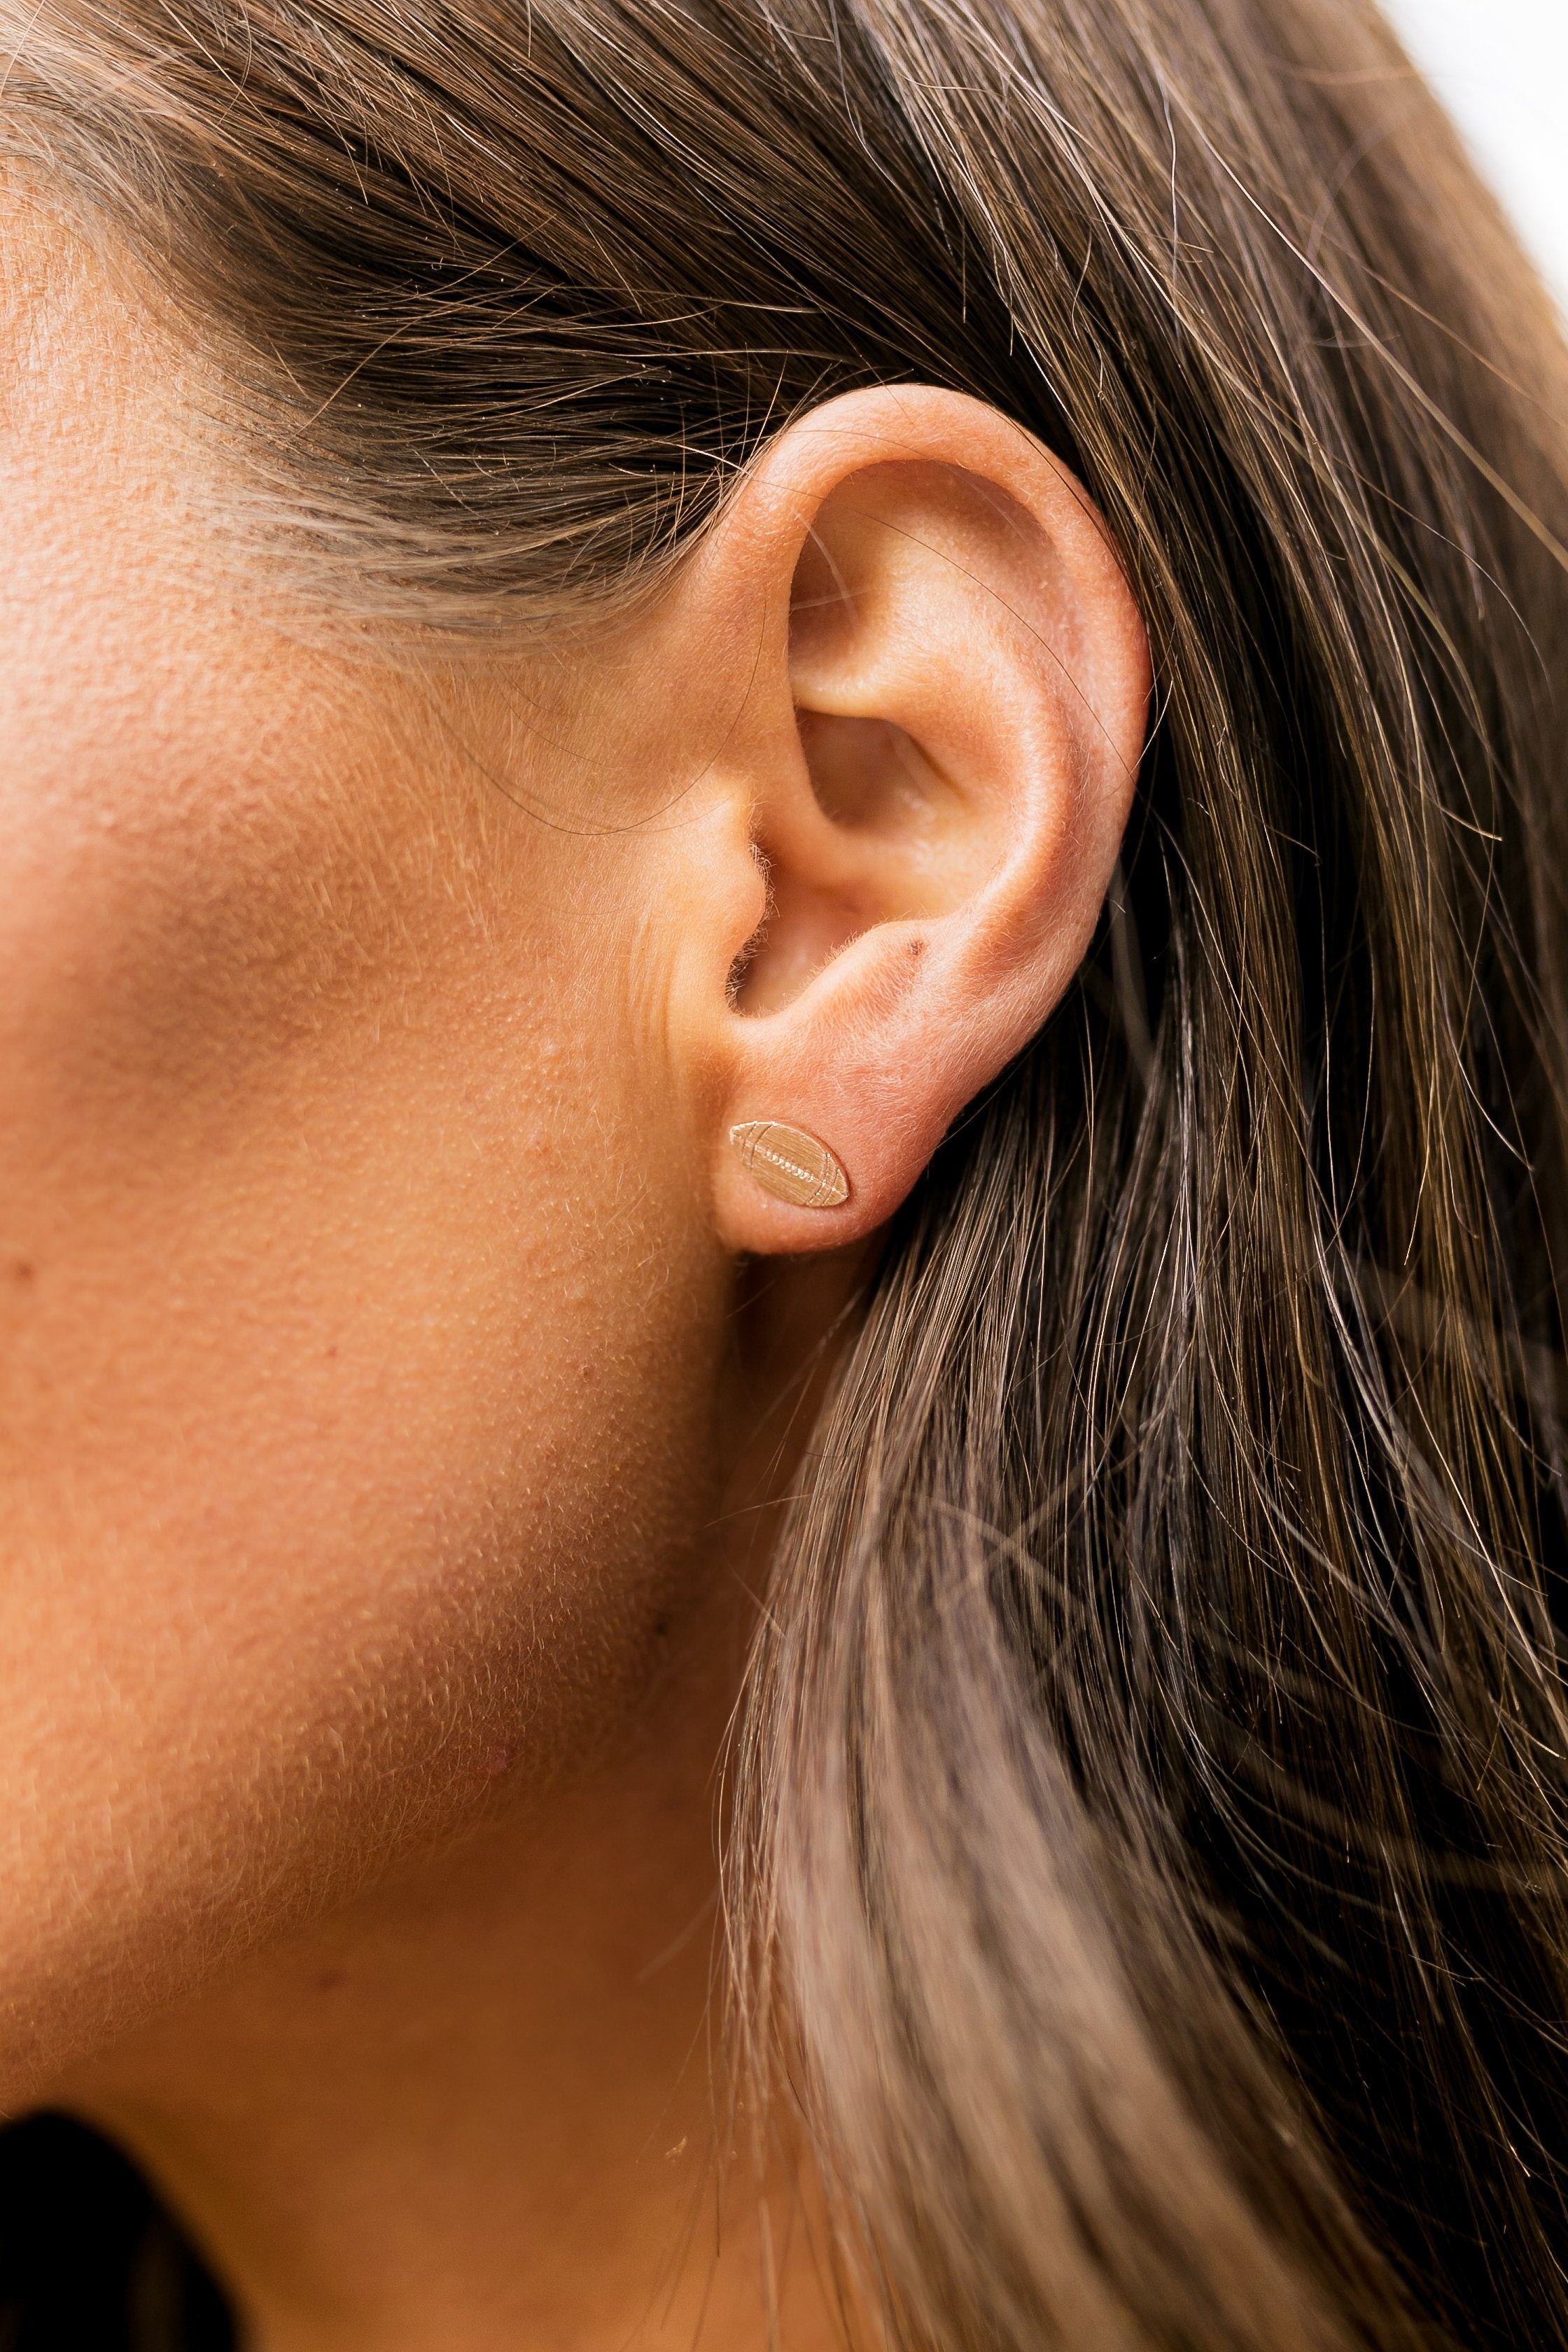 Football Earrings In Rose Gold - ALL SALES FINAL